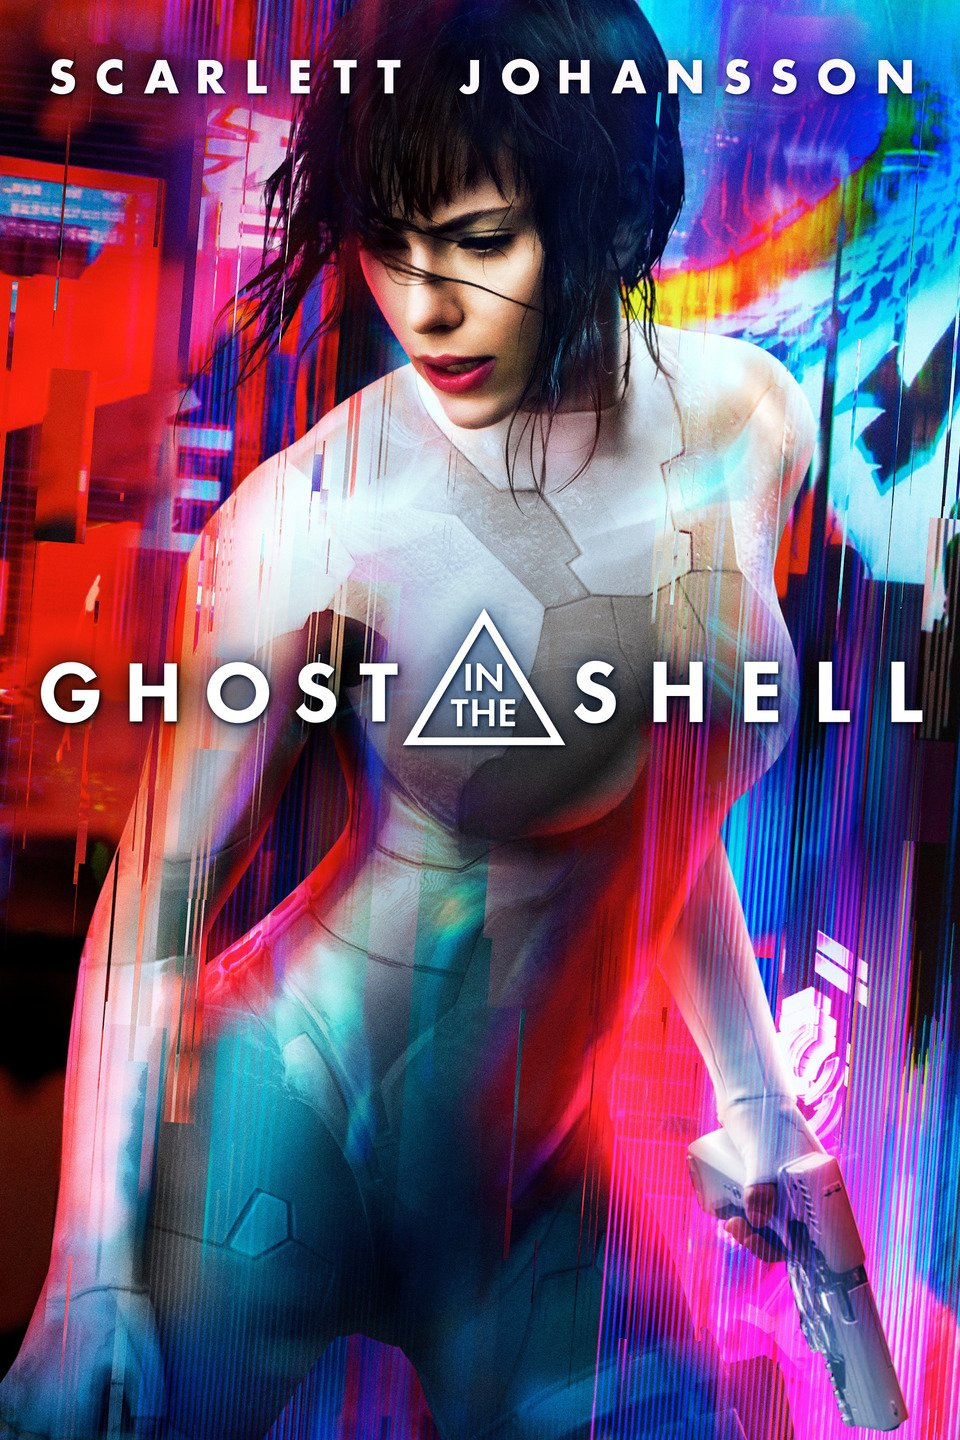 ghost in the shell 2019 hd stream